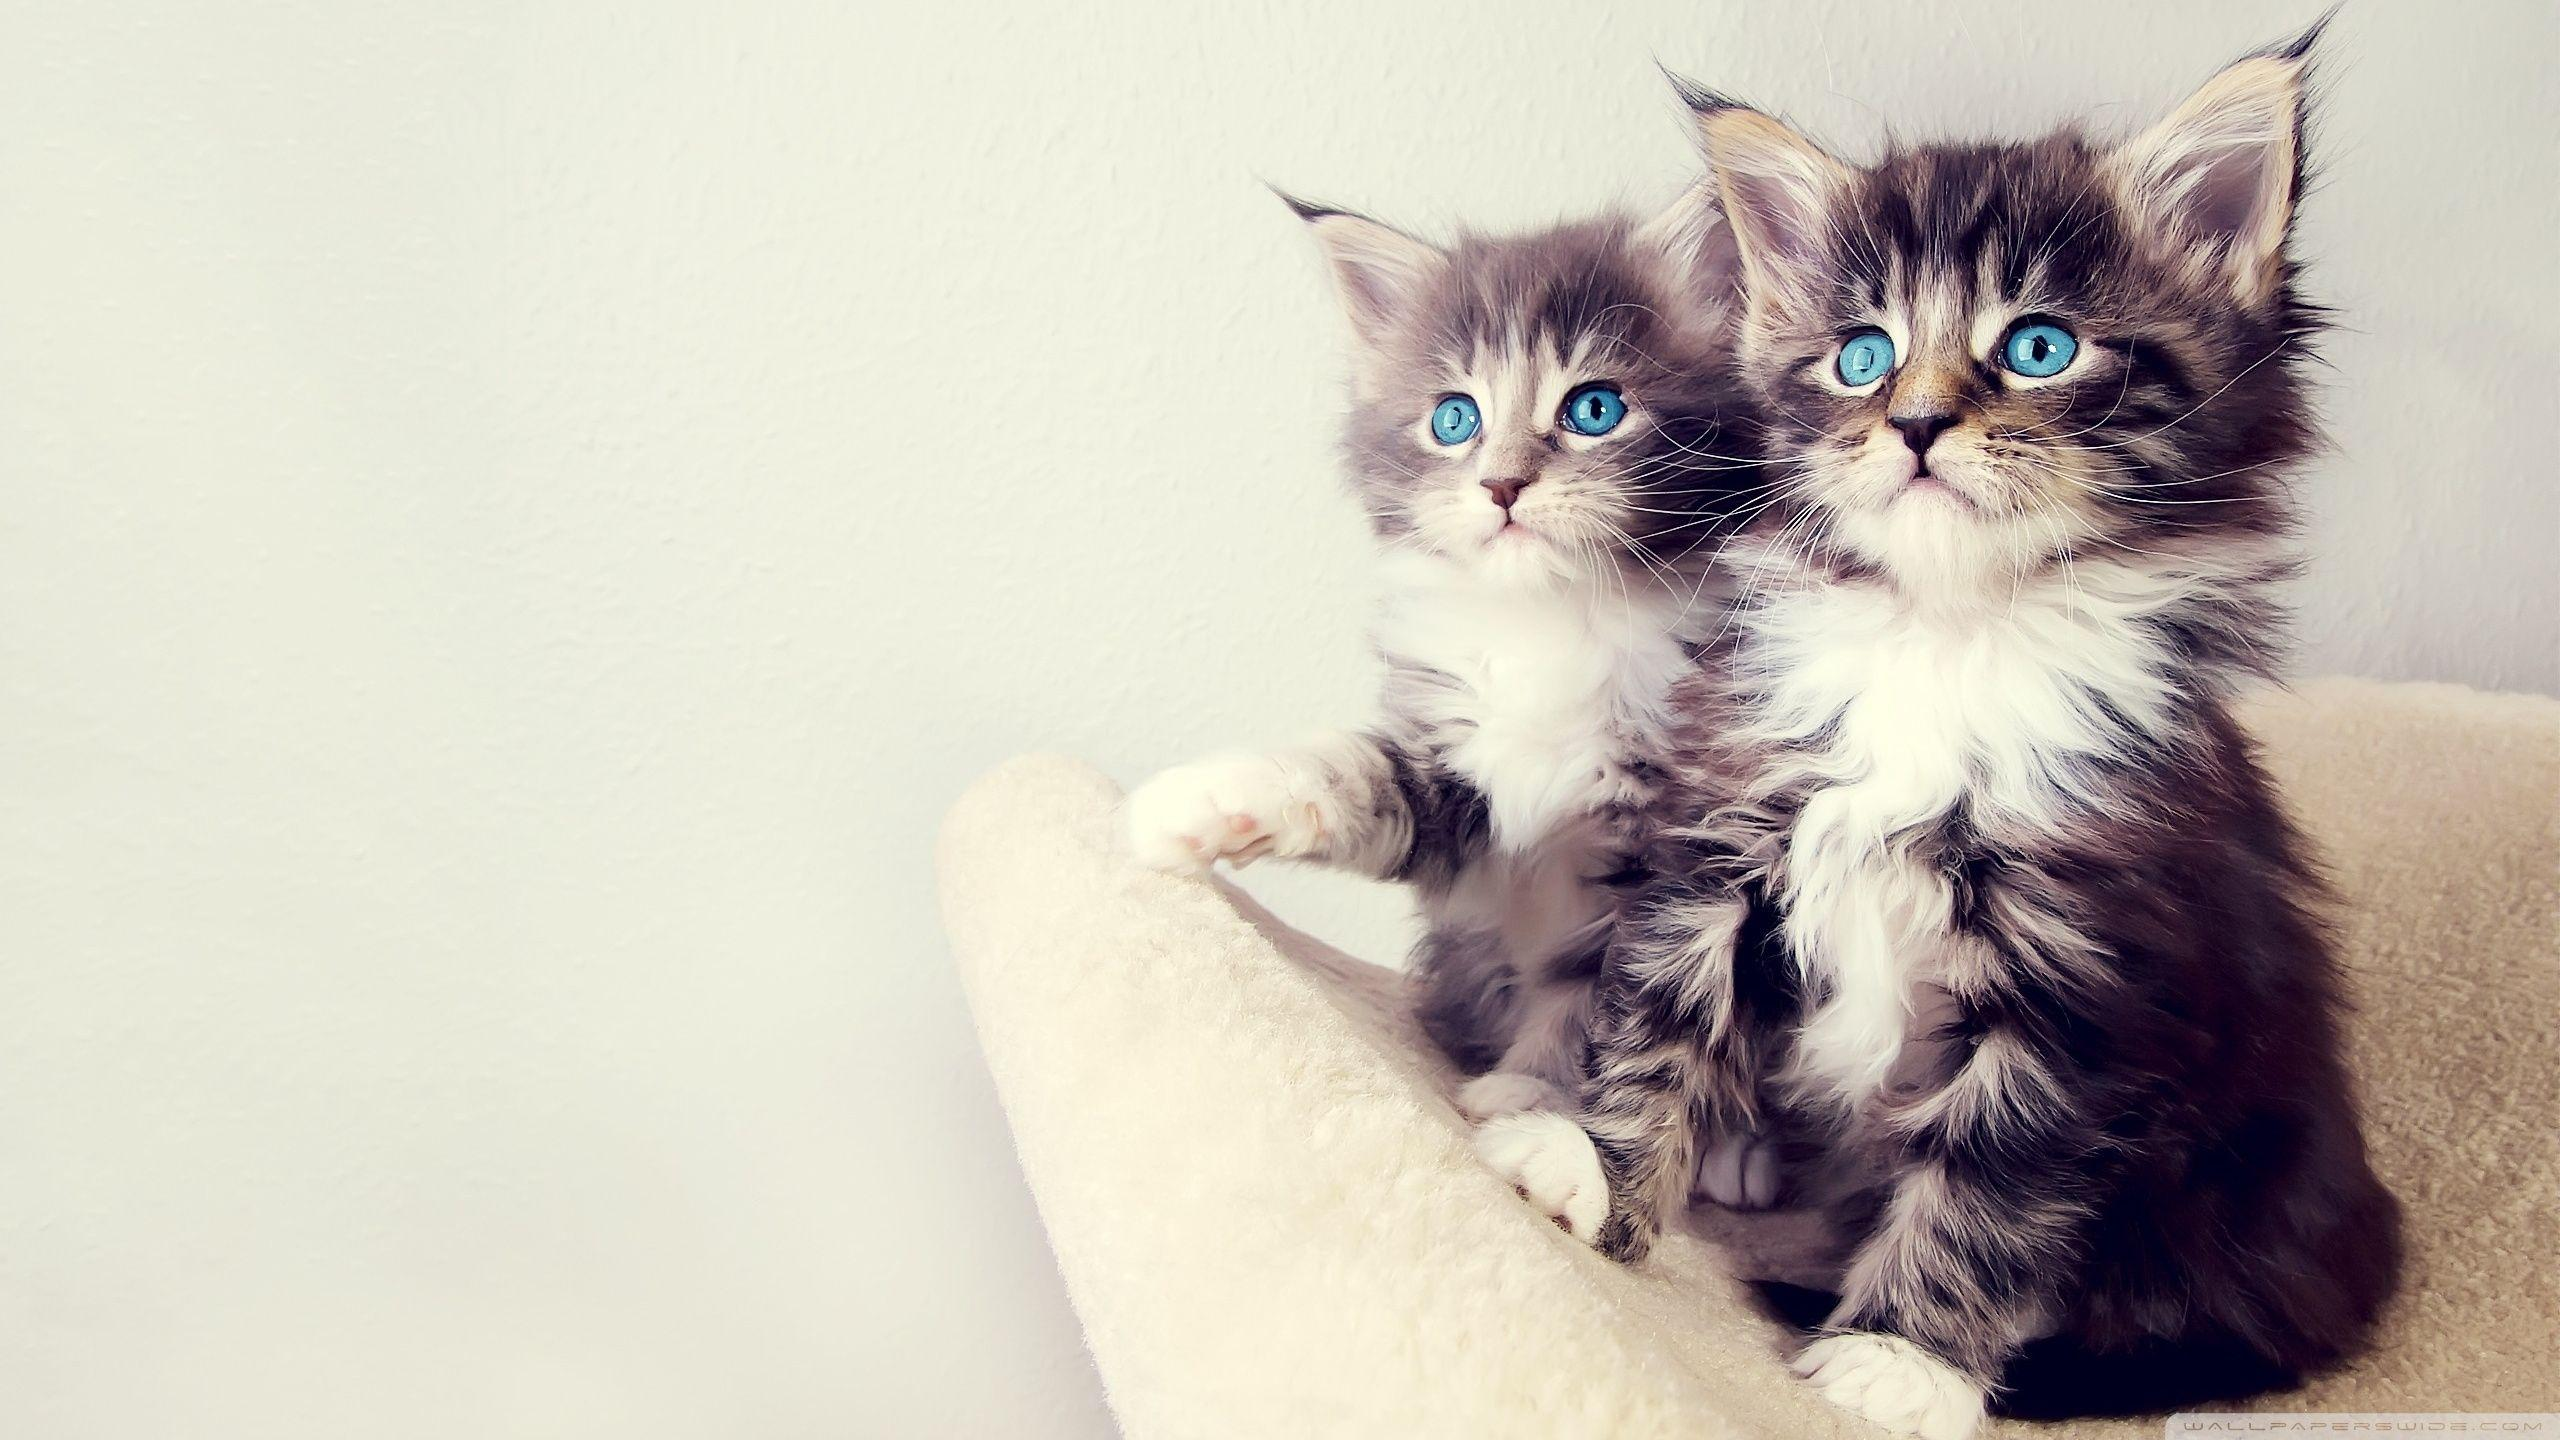 Cute Kittens Hd Wallpapers Wallpaper Cave